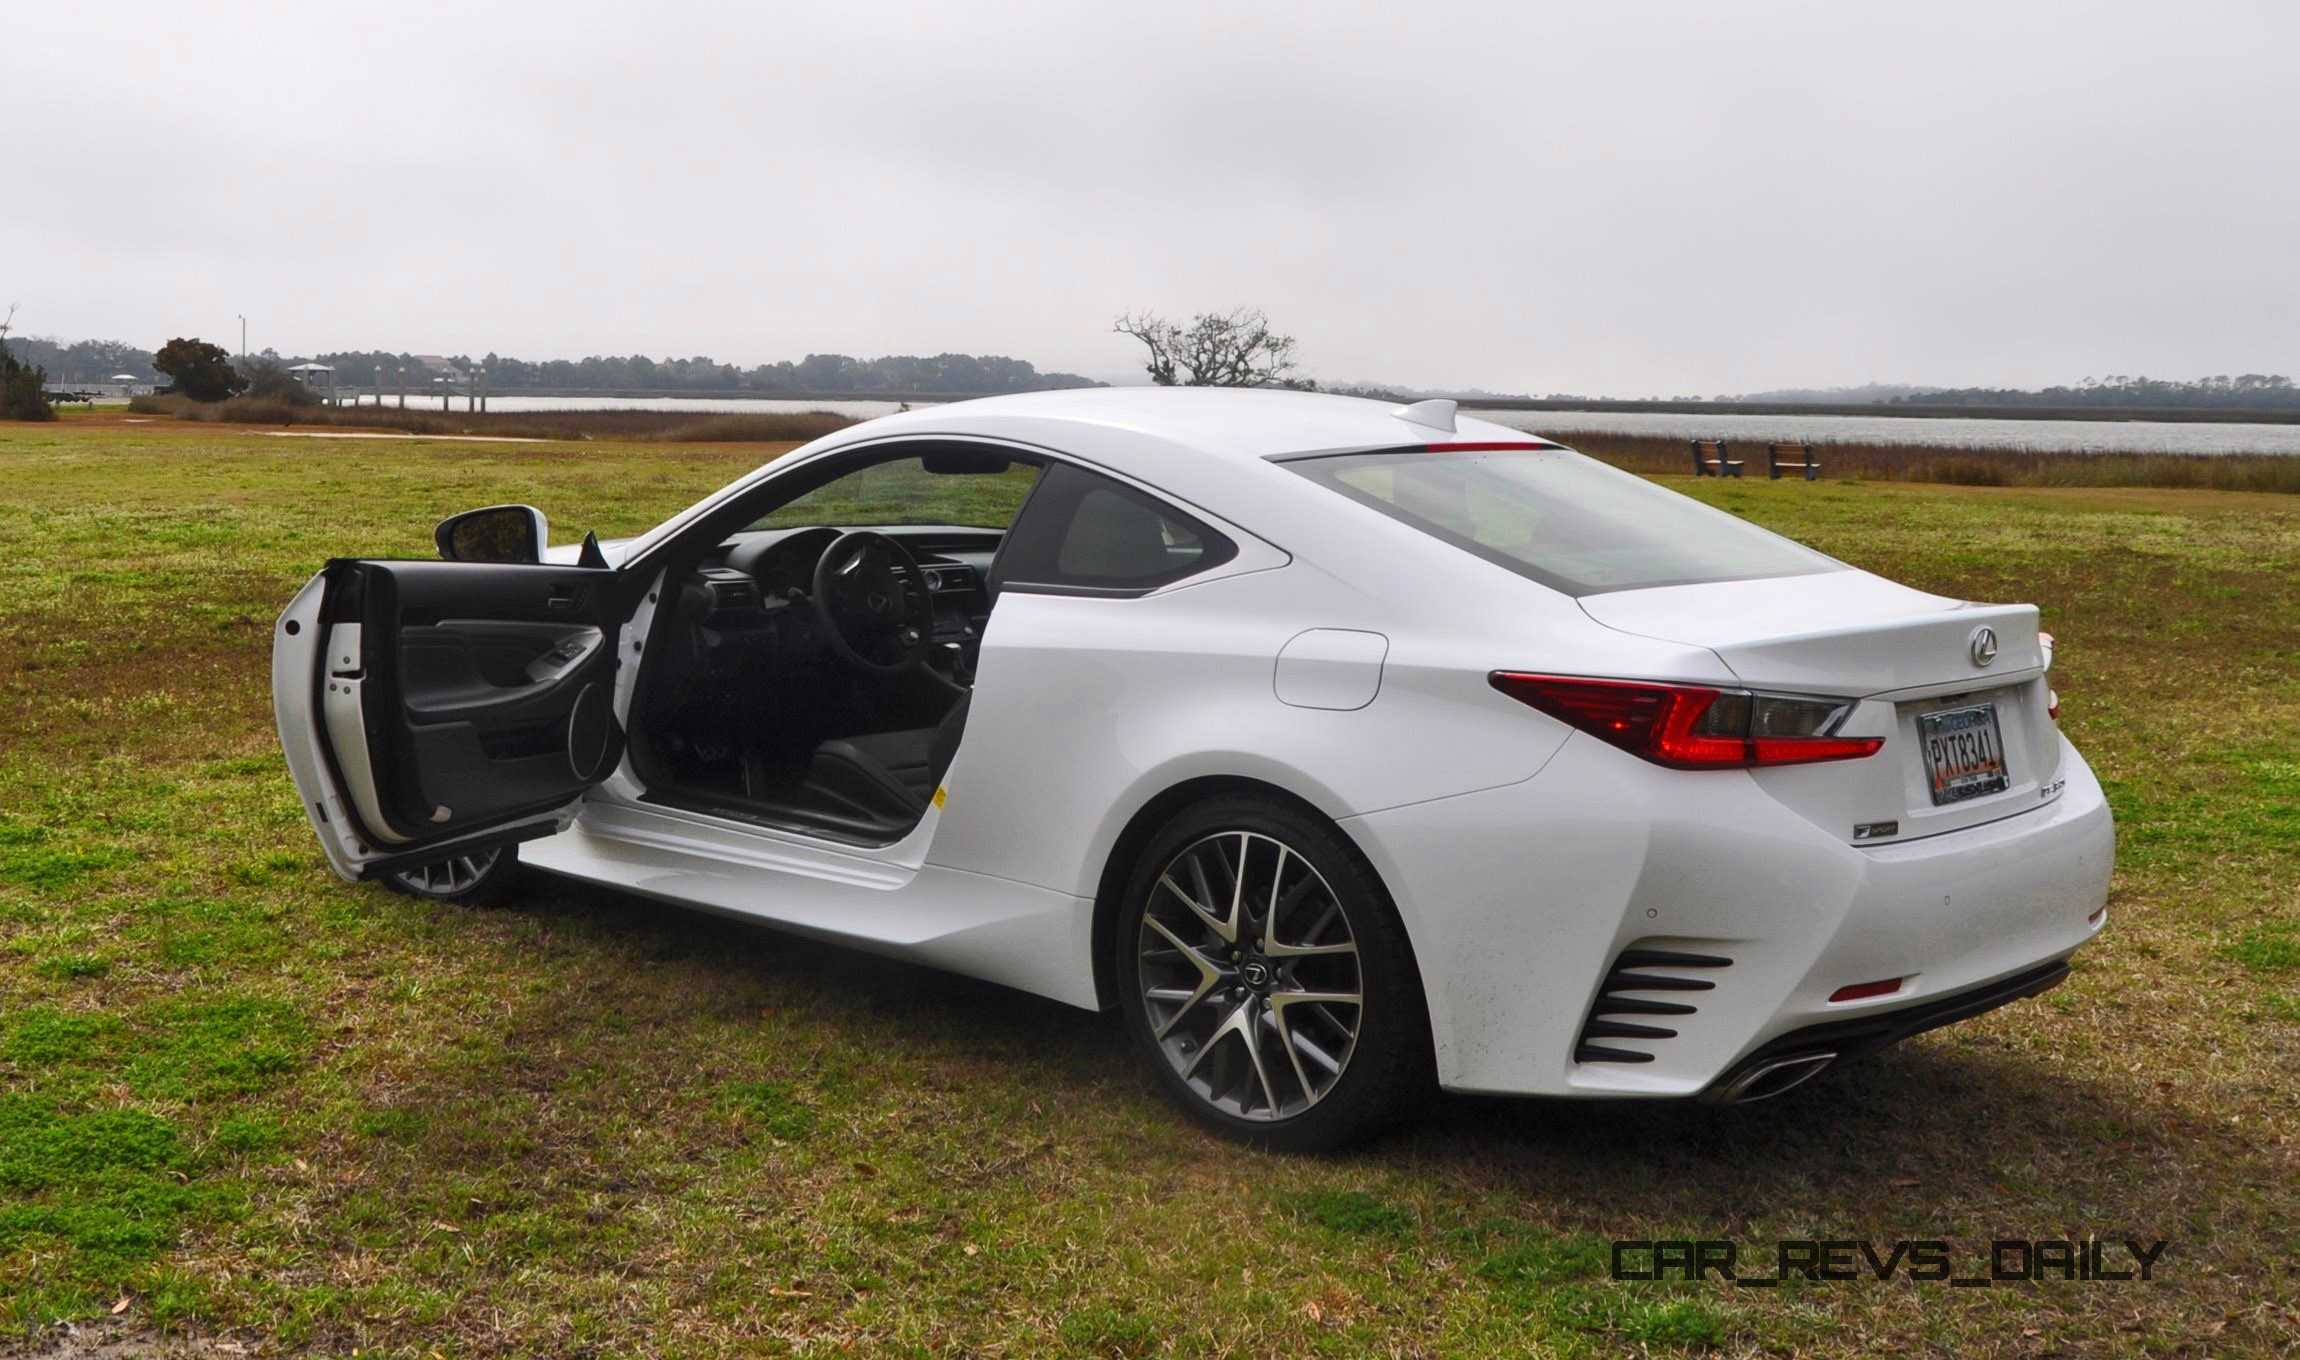 drive review 2016 lexus rc200t f sport by ben lewis car shopping. Black Bedroom Furniture Sets. Home Design Ideas